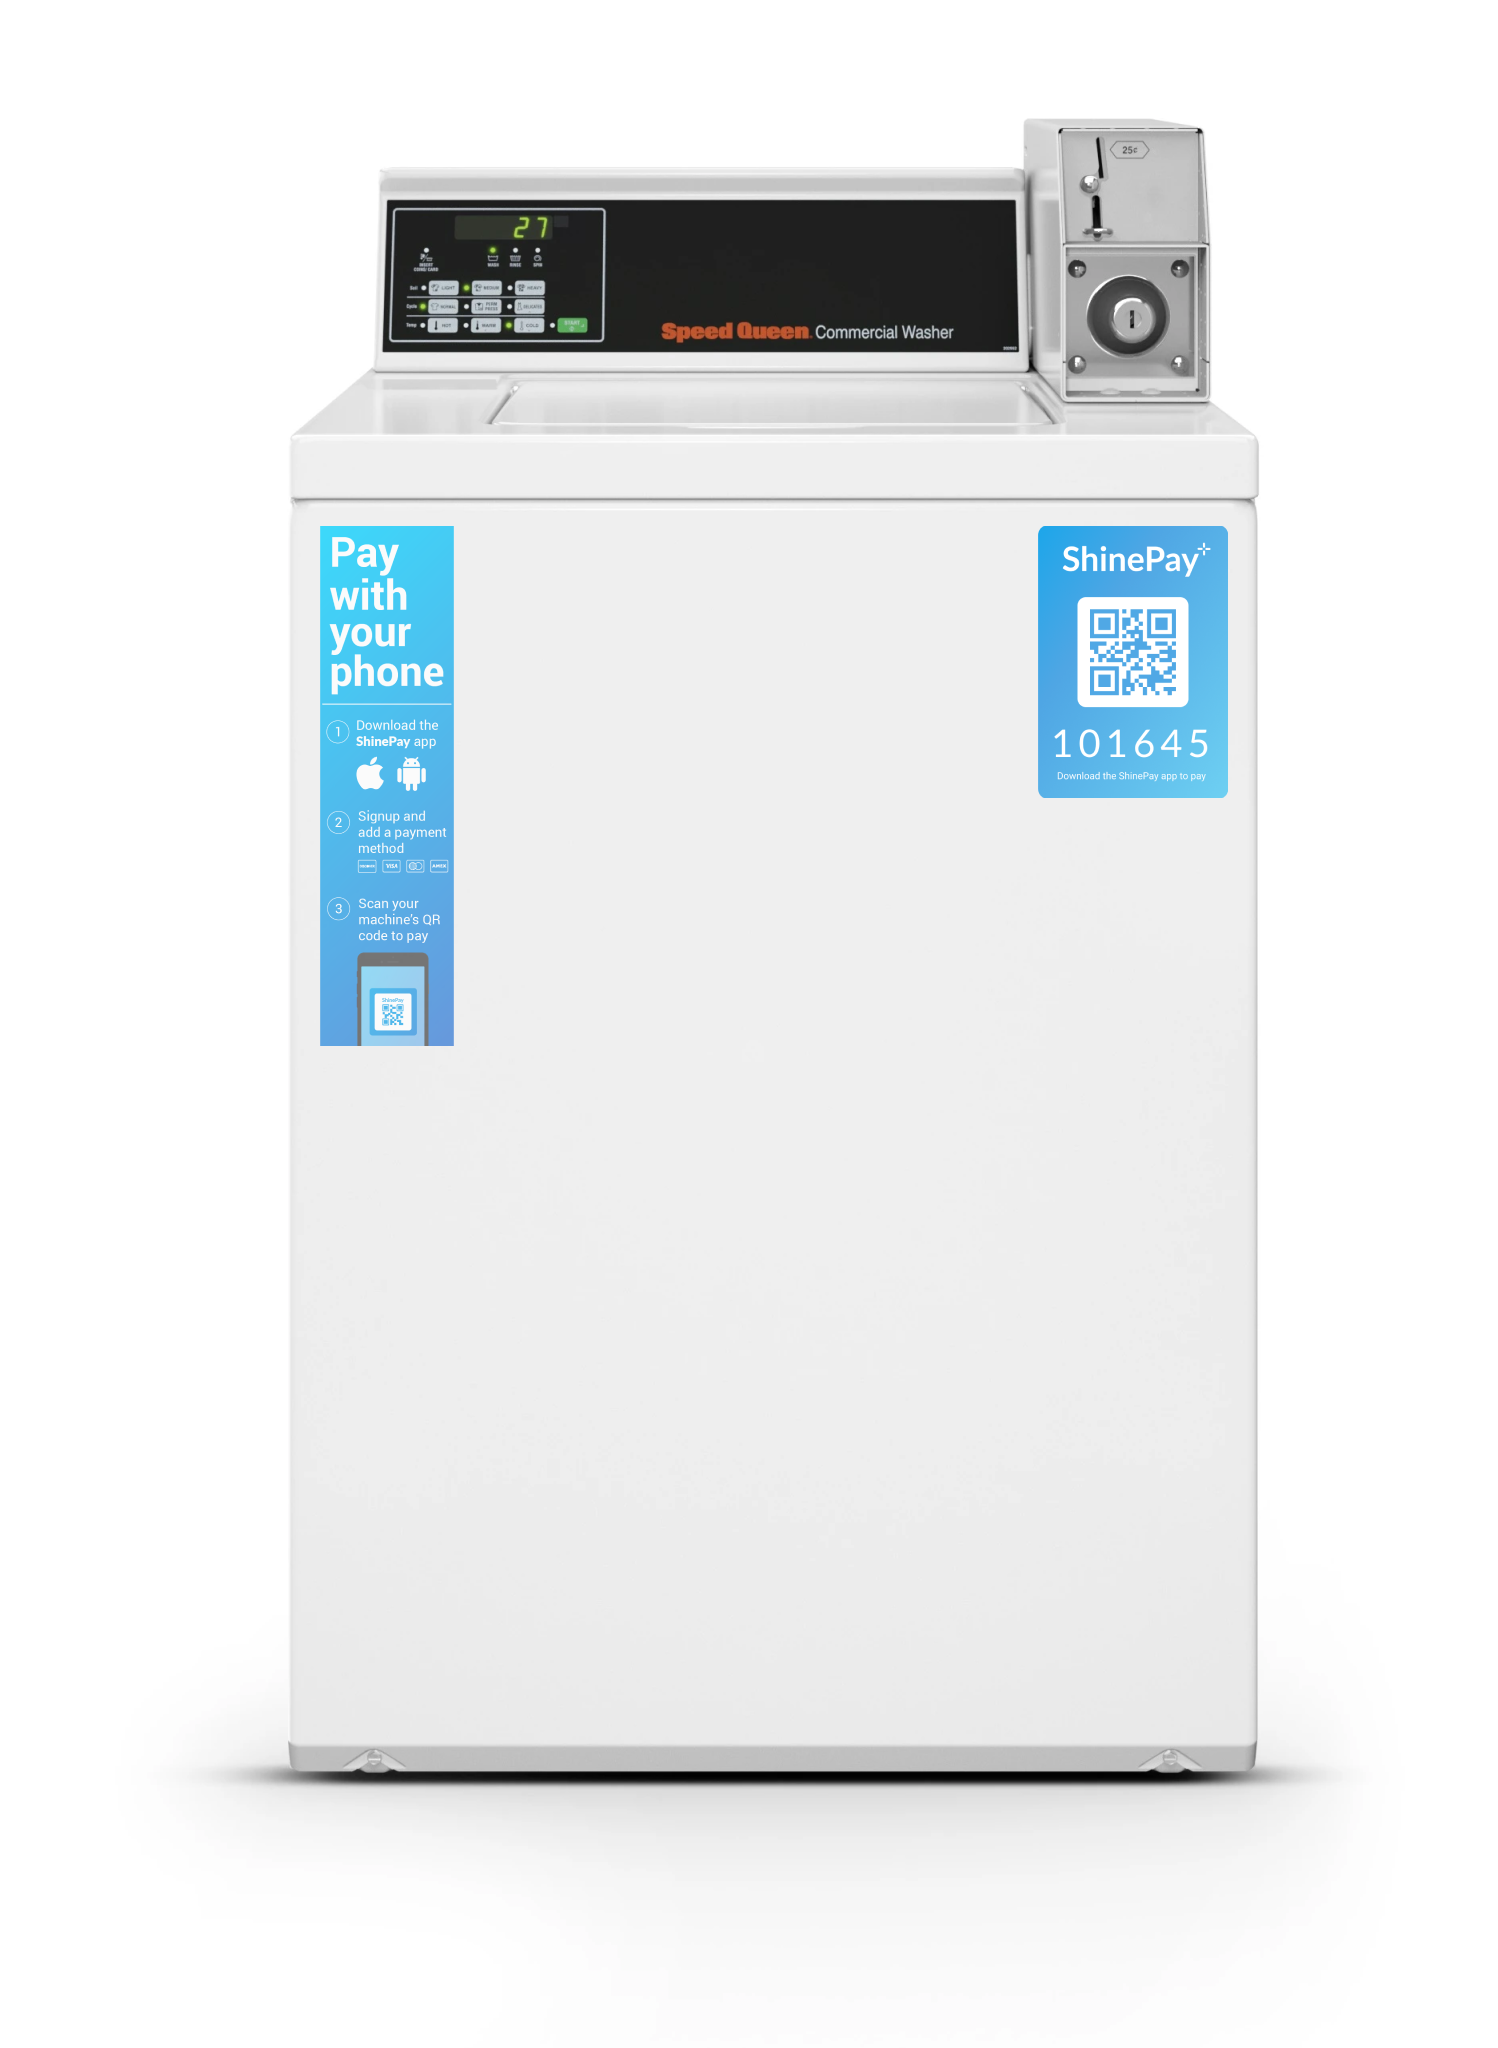 coin-operated-laundry-machine-payment